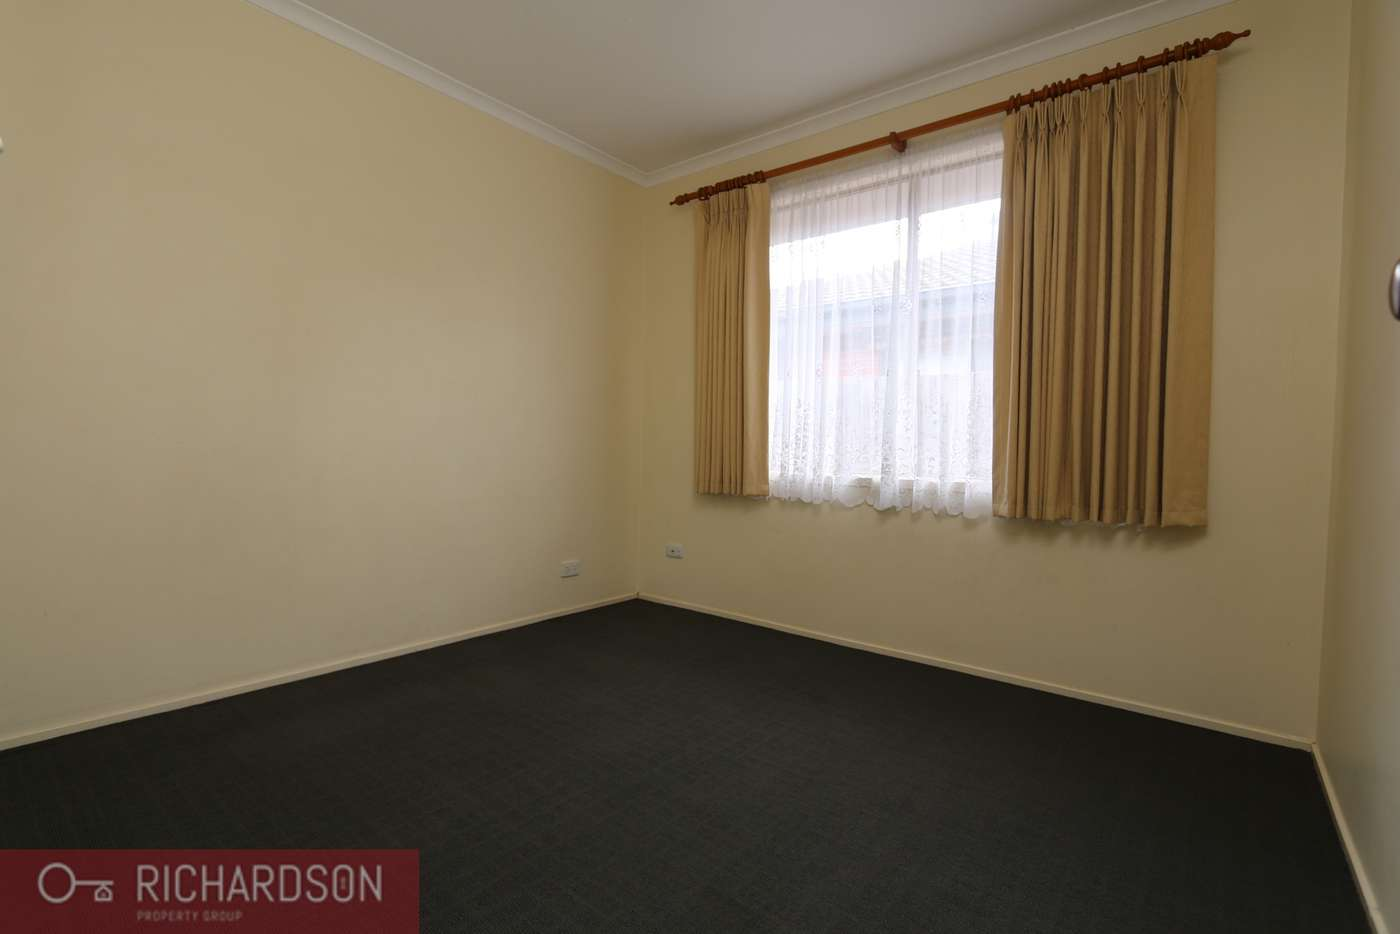 Seventh view of Homely house listing, 10 Marlo Square, Wyndham Vale VIC 3024